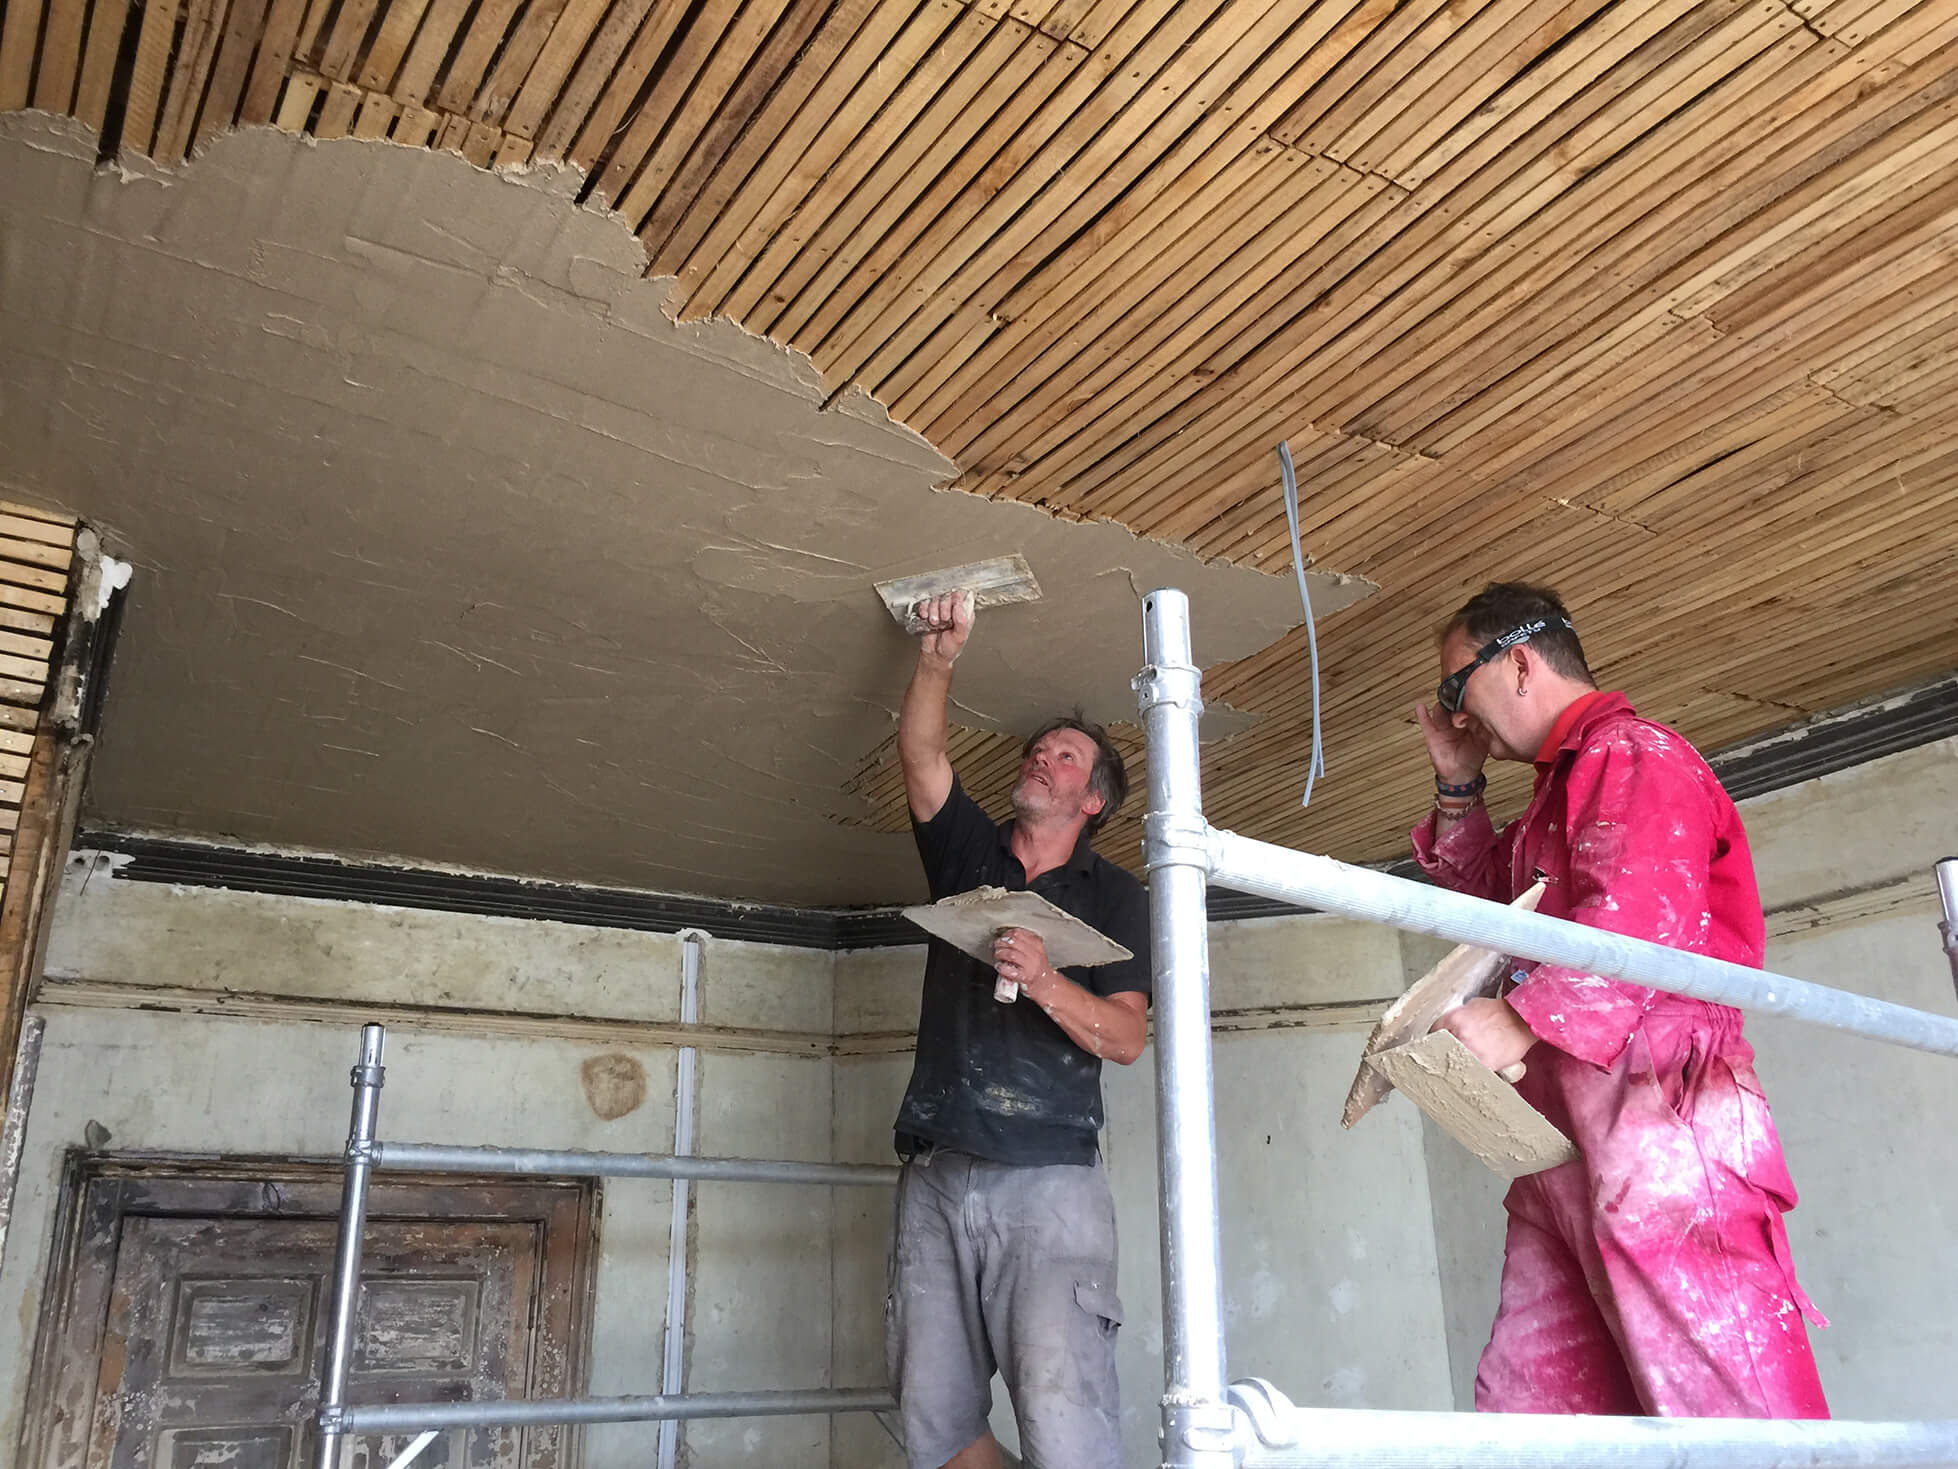 drywall and plastering contractors near me